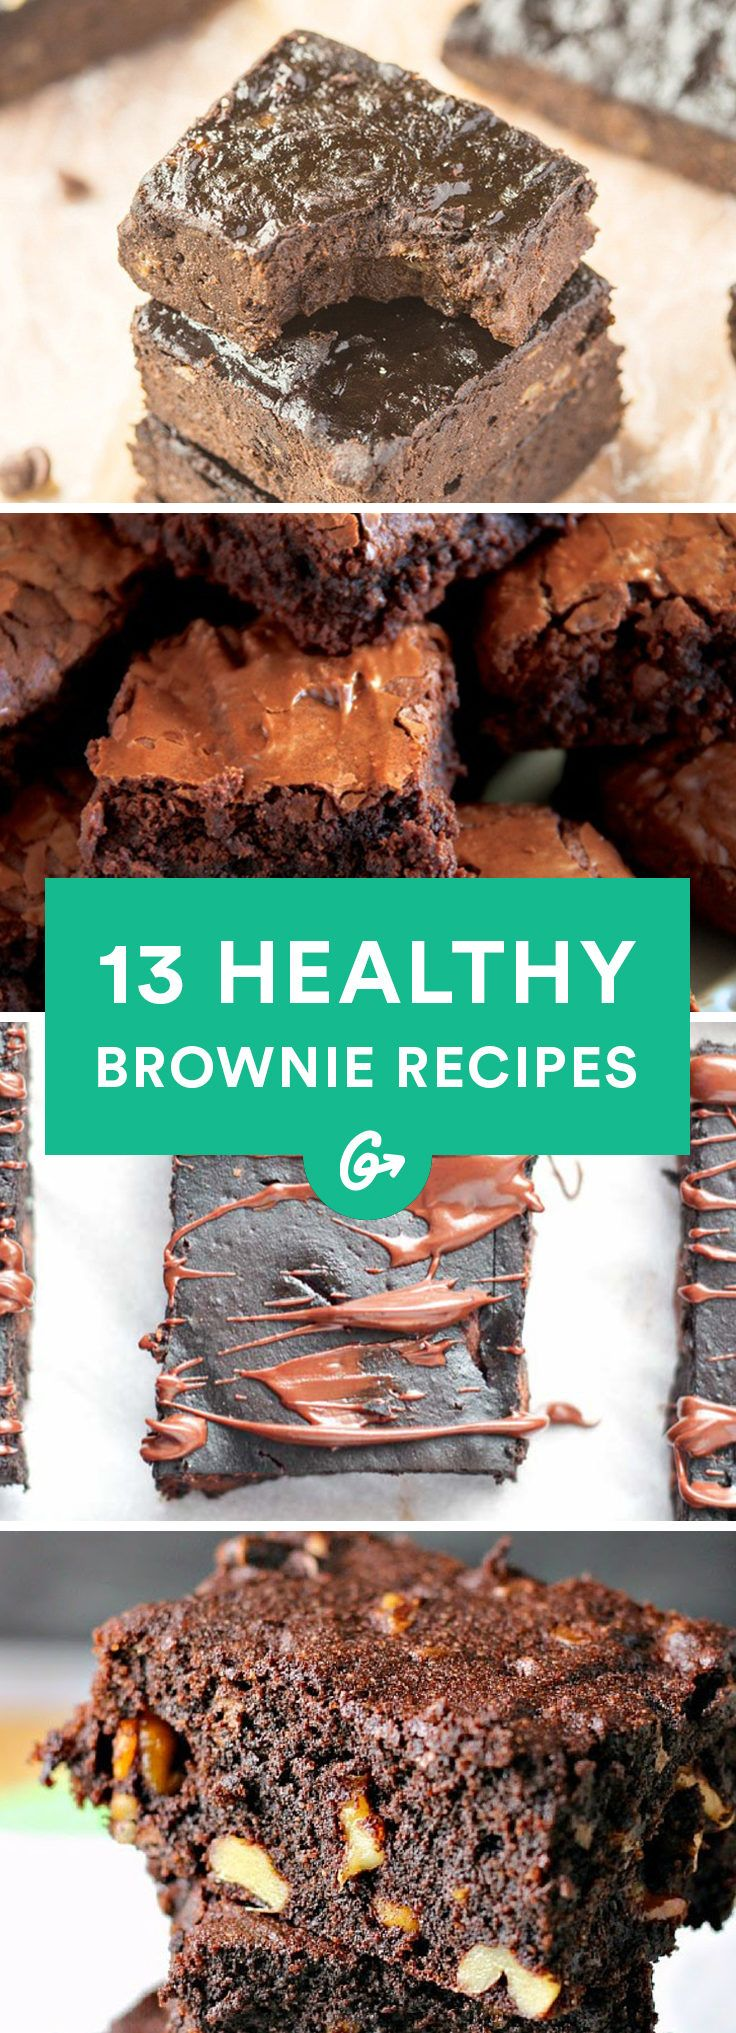 It's time to think outside the Betty Crocker box. #healthy #brownie #recipes https://greatist.com/eat/healthy-brownie-recipes